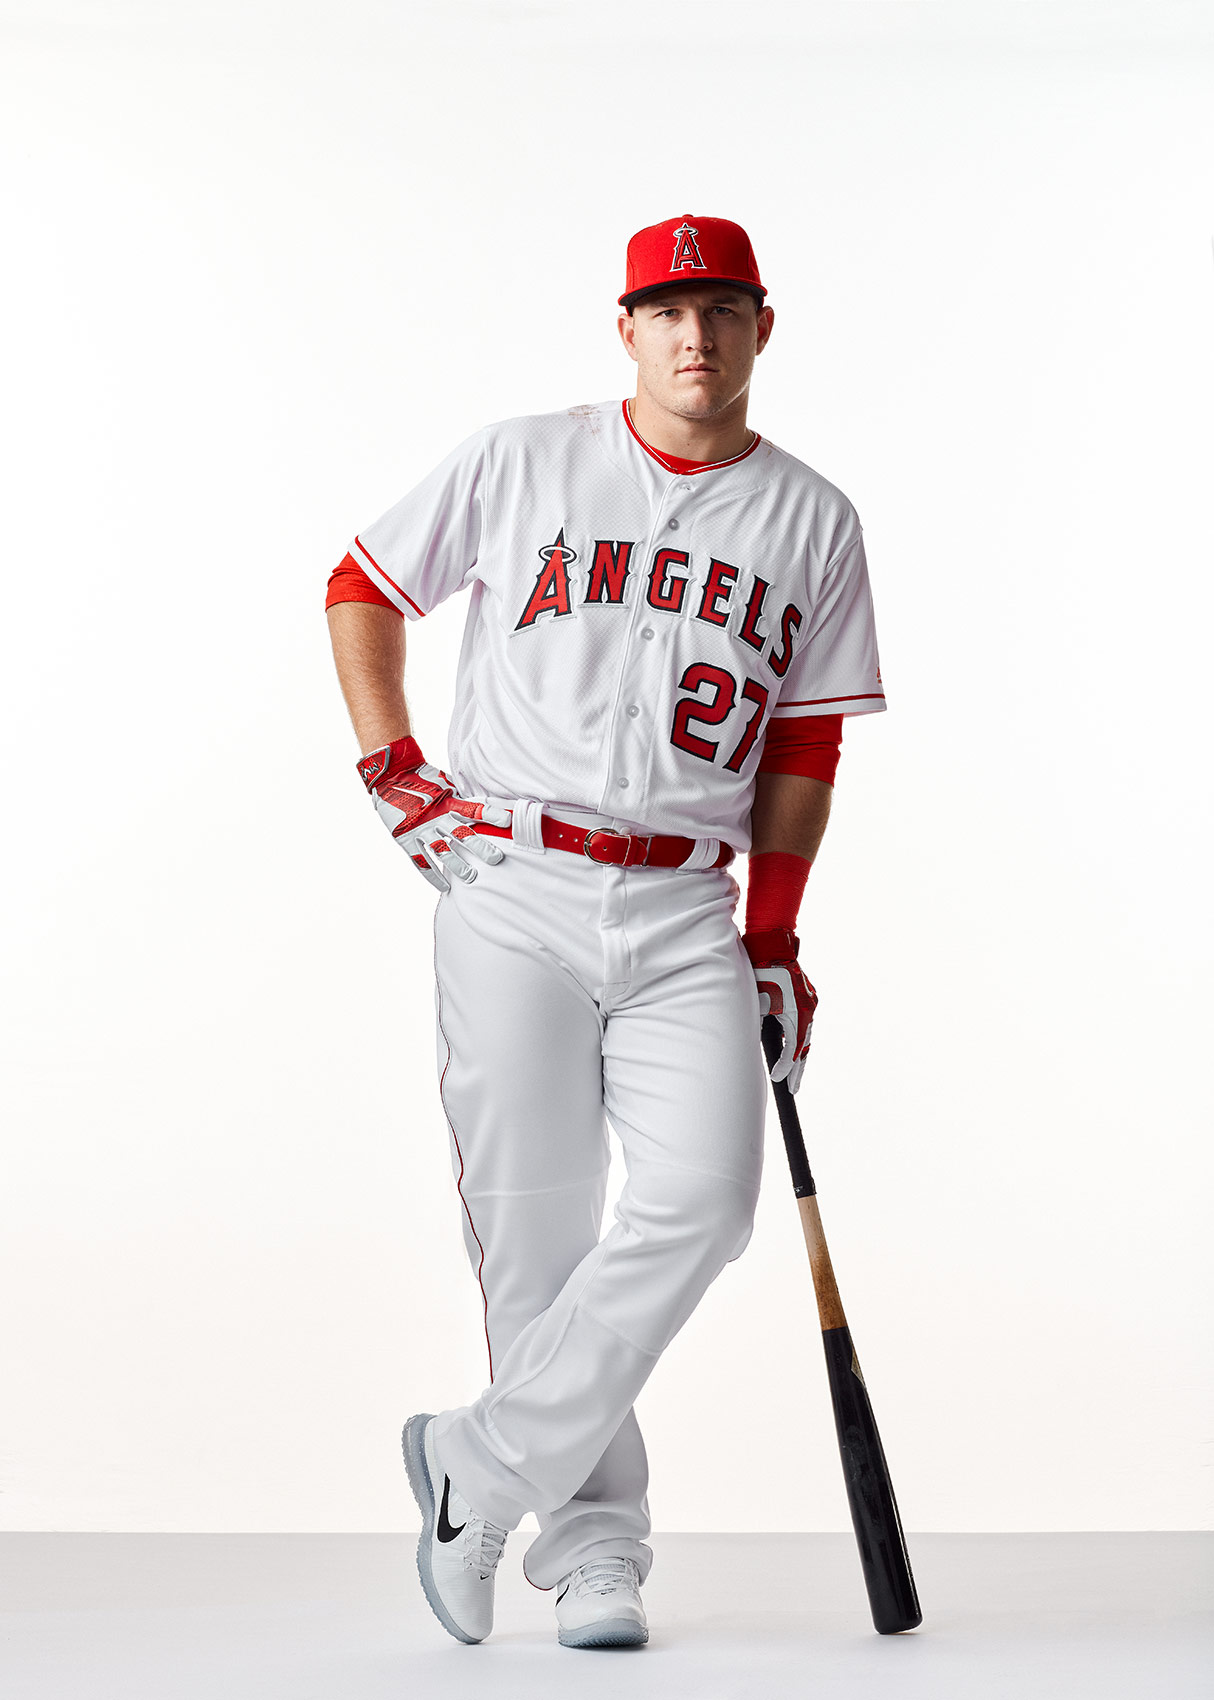 20161216_mike-trout_3336-web